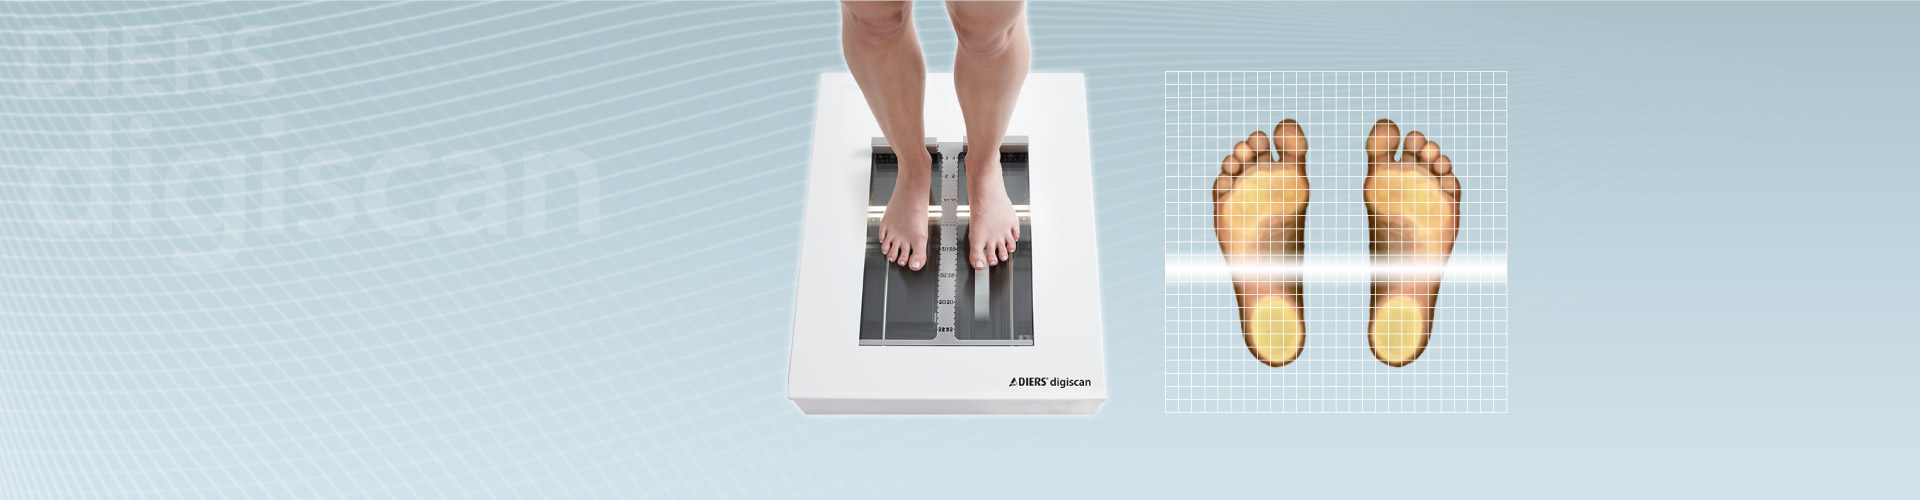 DIERS dgiscan: Foot Scanner + Podoscope